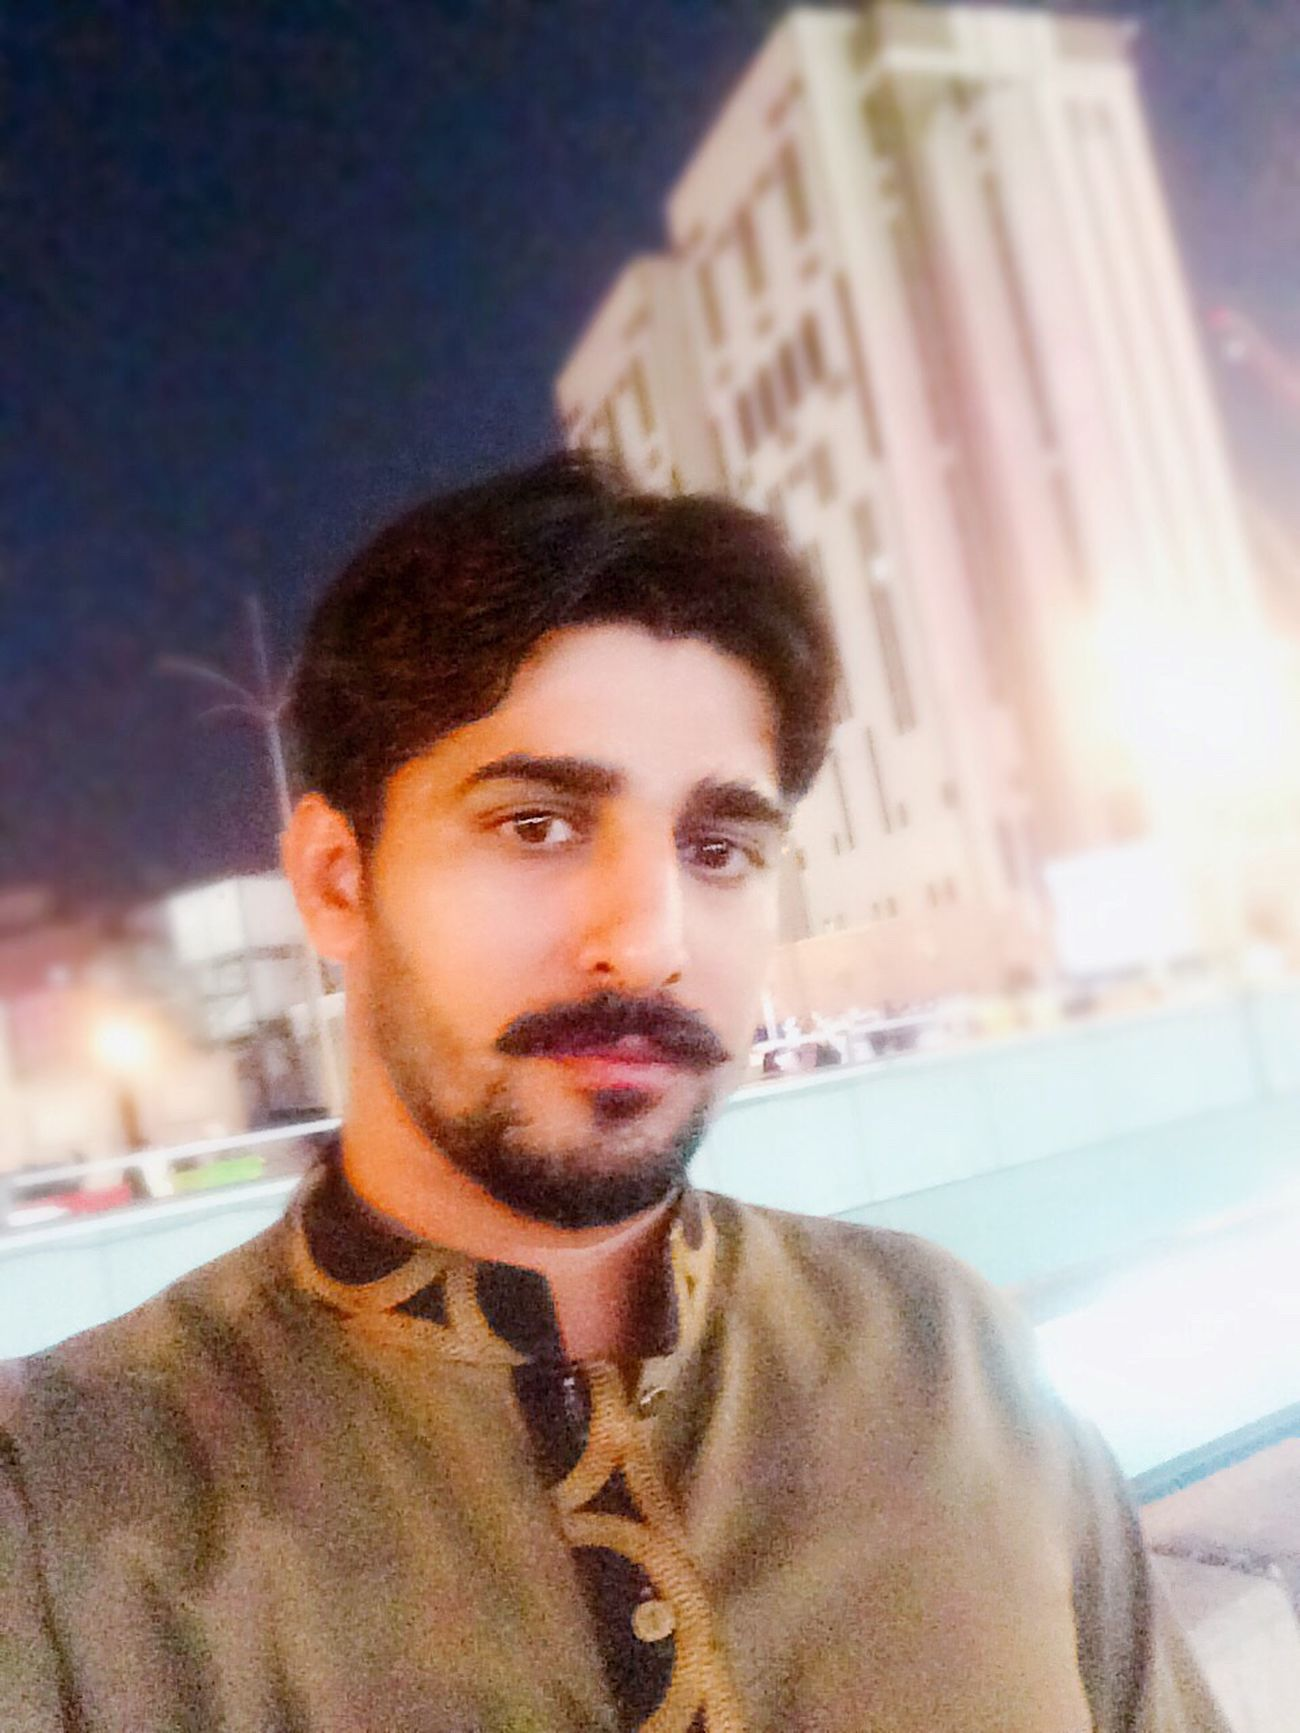 Looking At Camera My City Dhaunkal Handsome Smiling Young Men Enjoying Life Asian  Looking At Camera Selfie ✌ Hi! Beautiful Pakistan That's Me Today's Hot Look First Eyeem Photo Pakistani With Friends Hello World